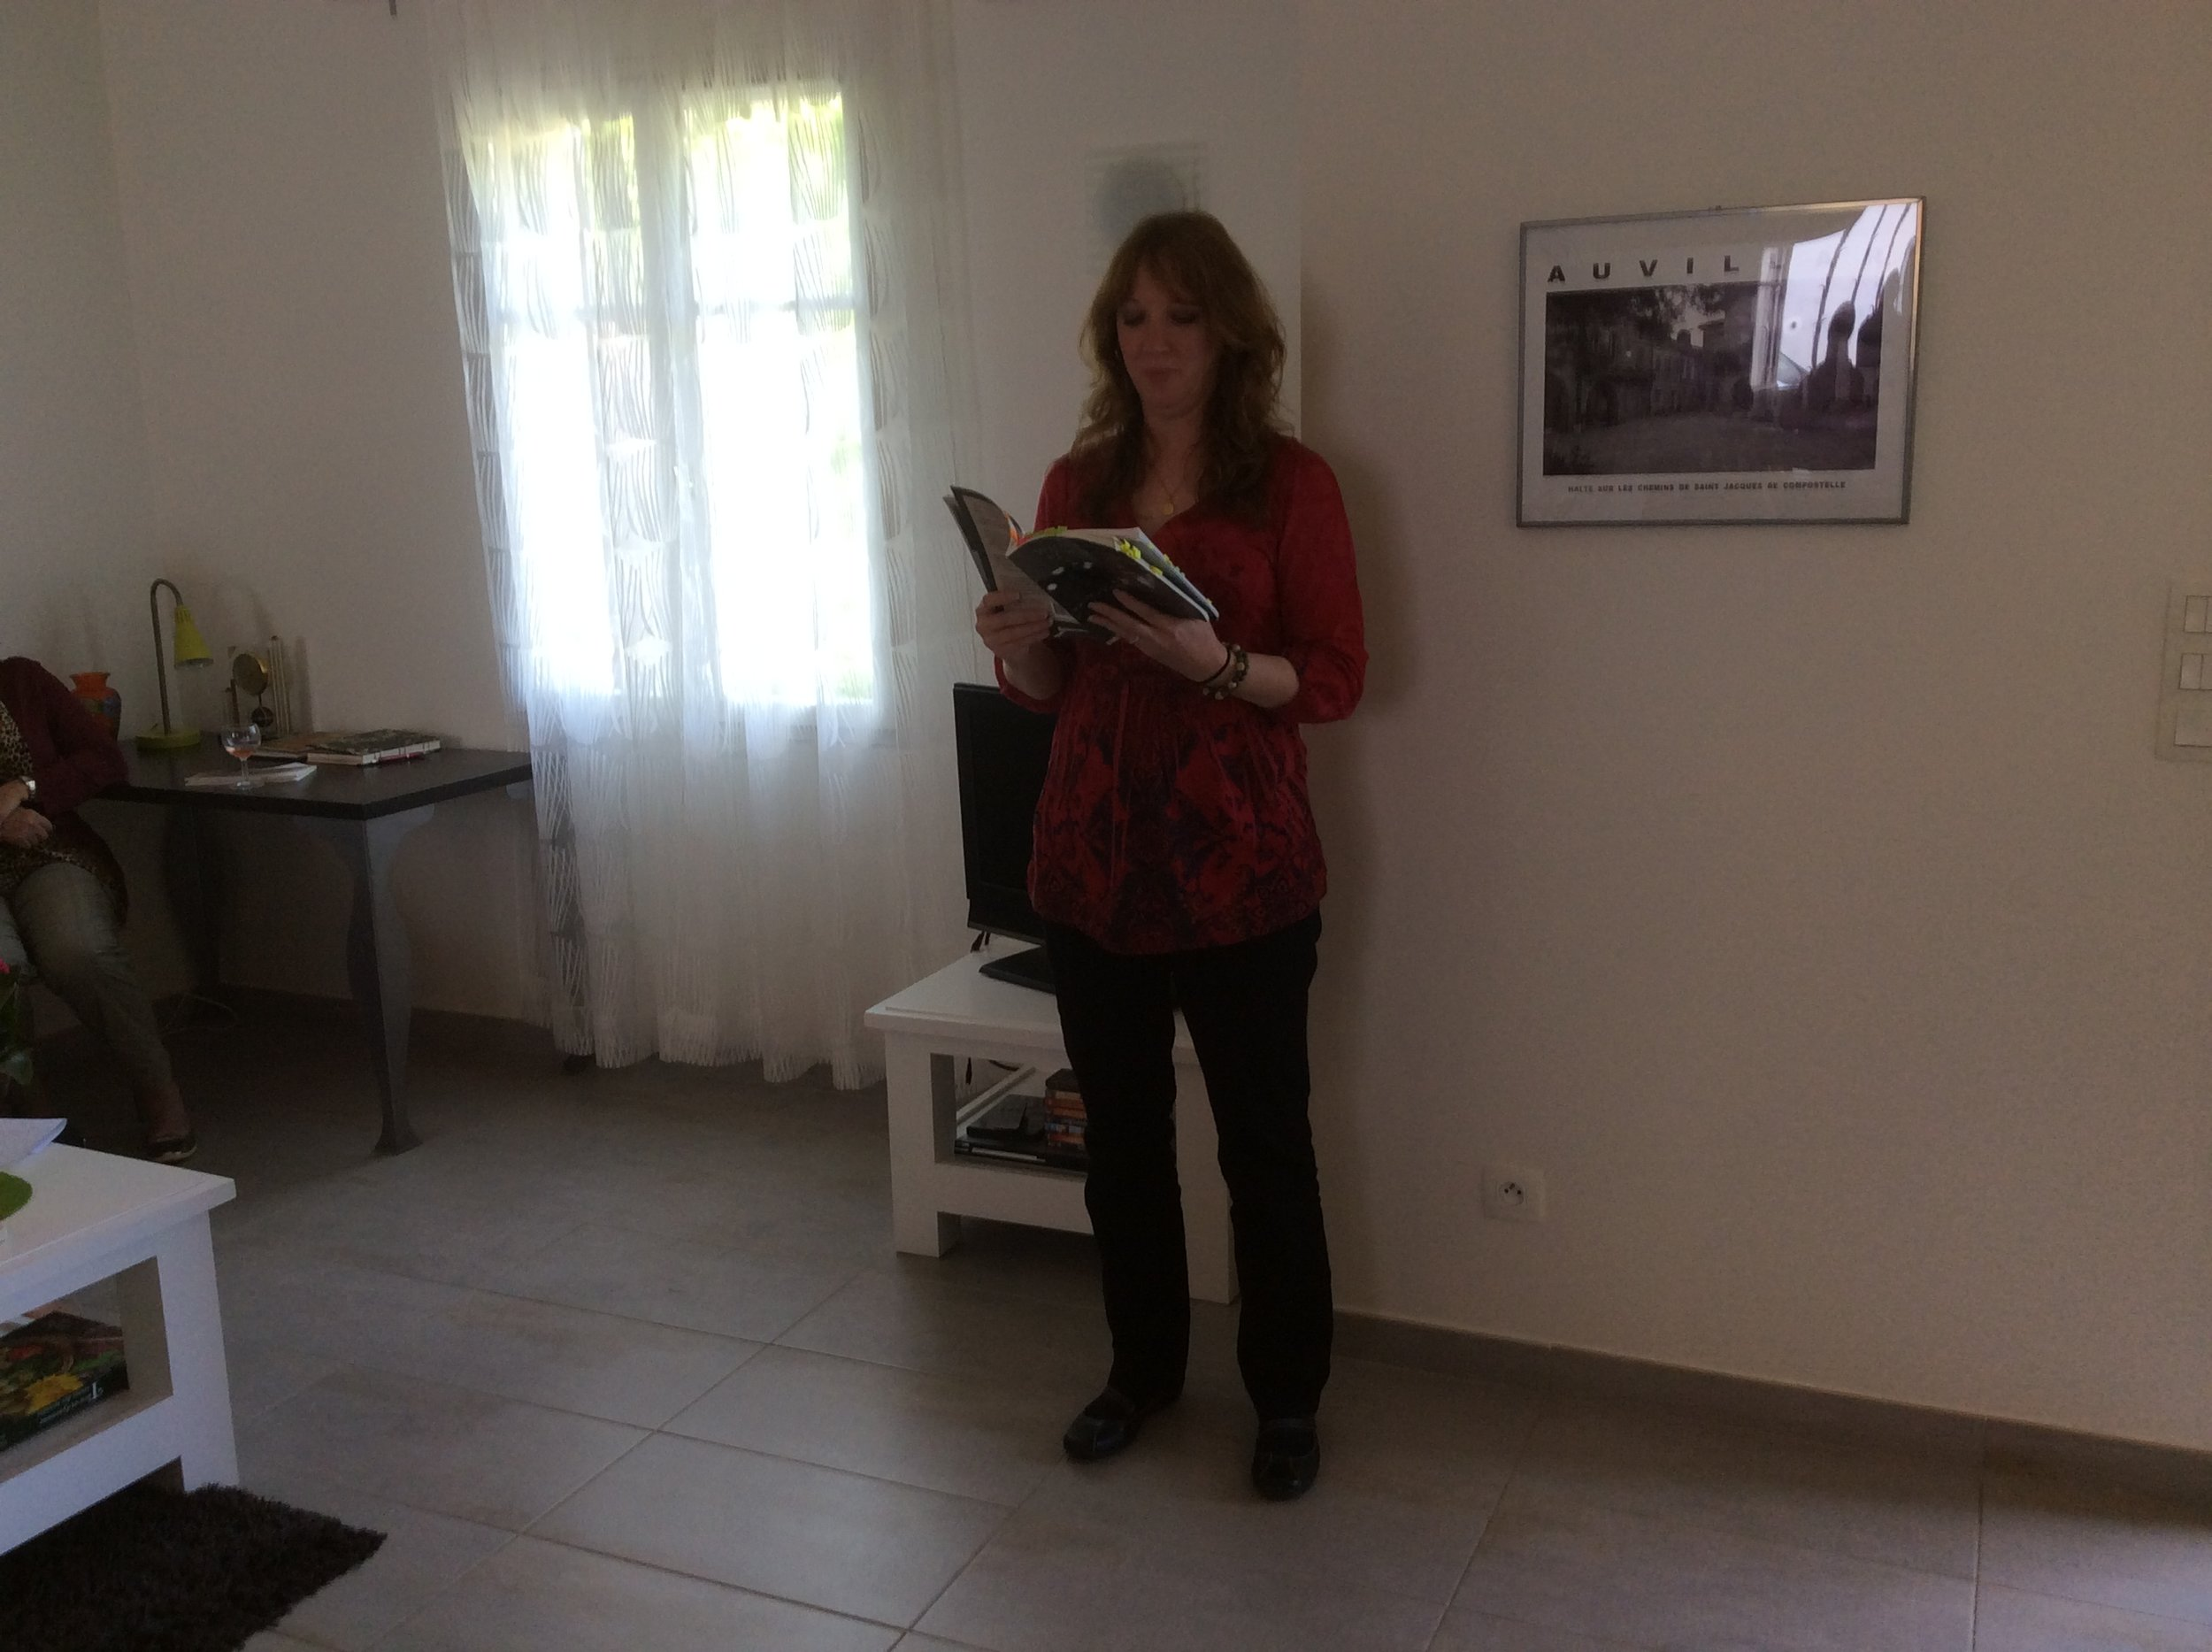 Reading in Auvillar, France